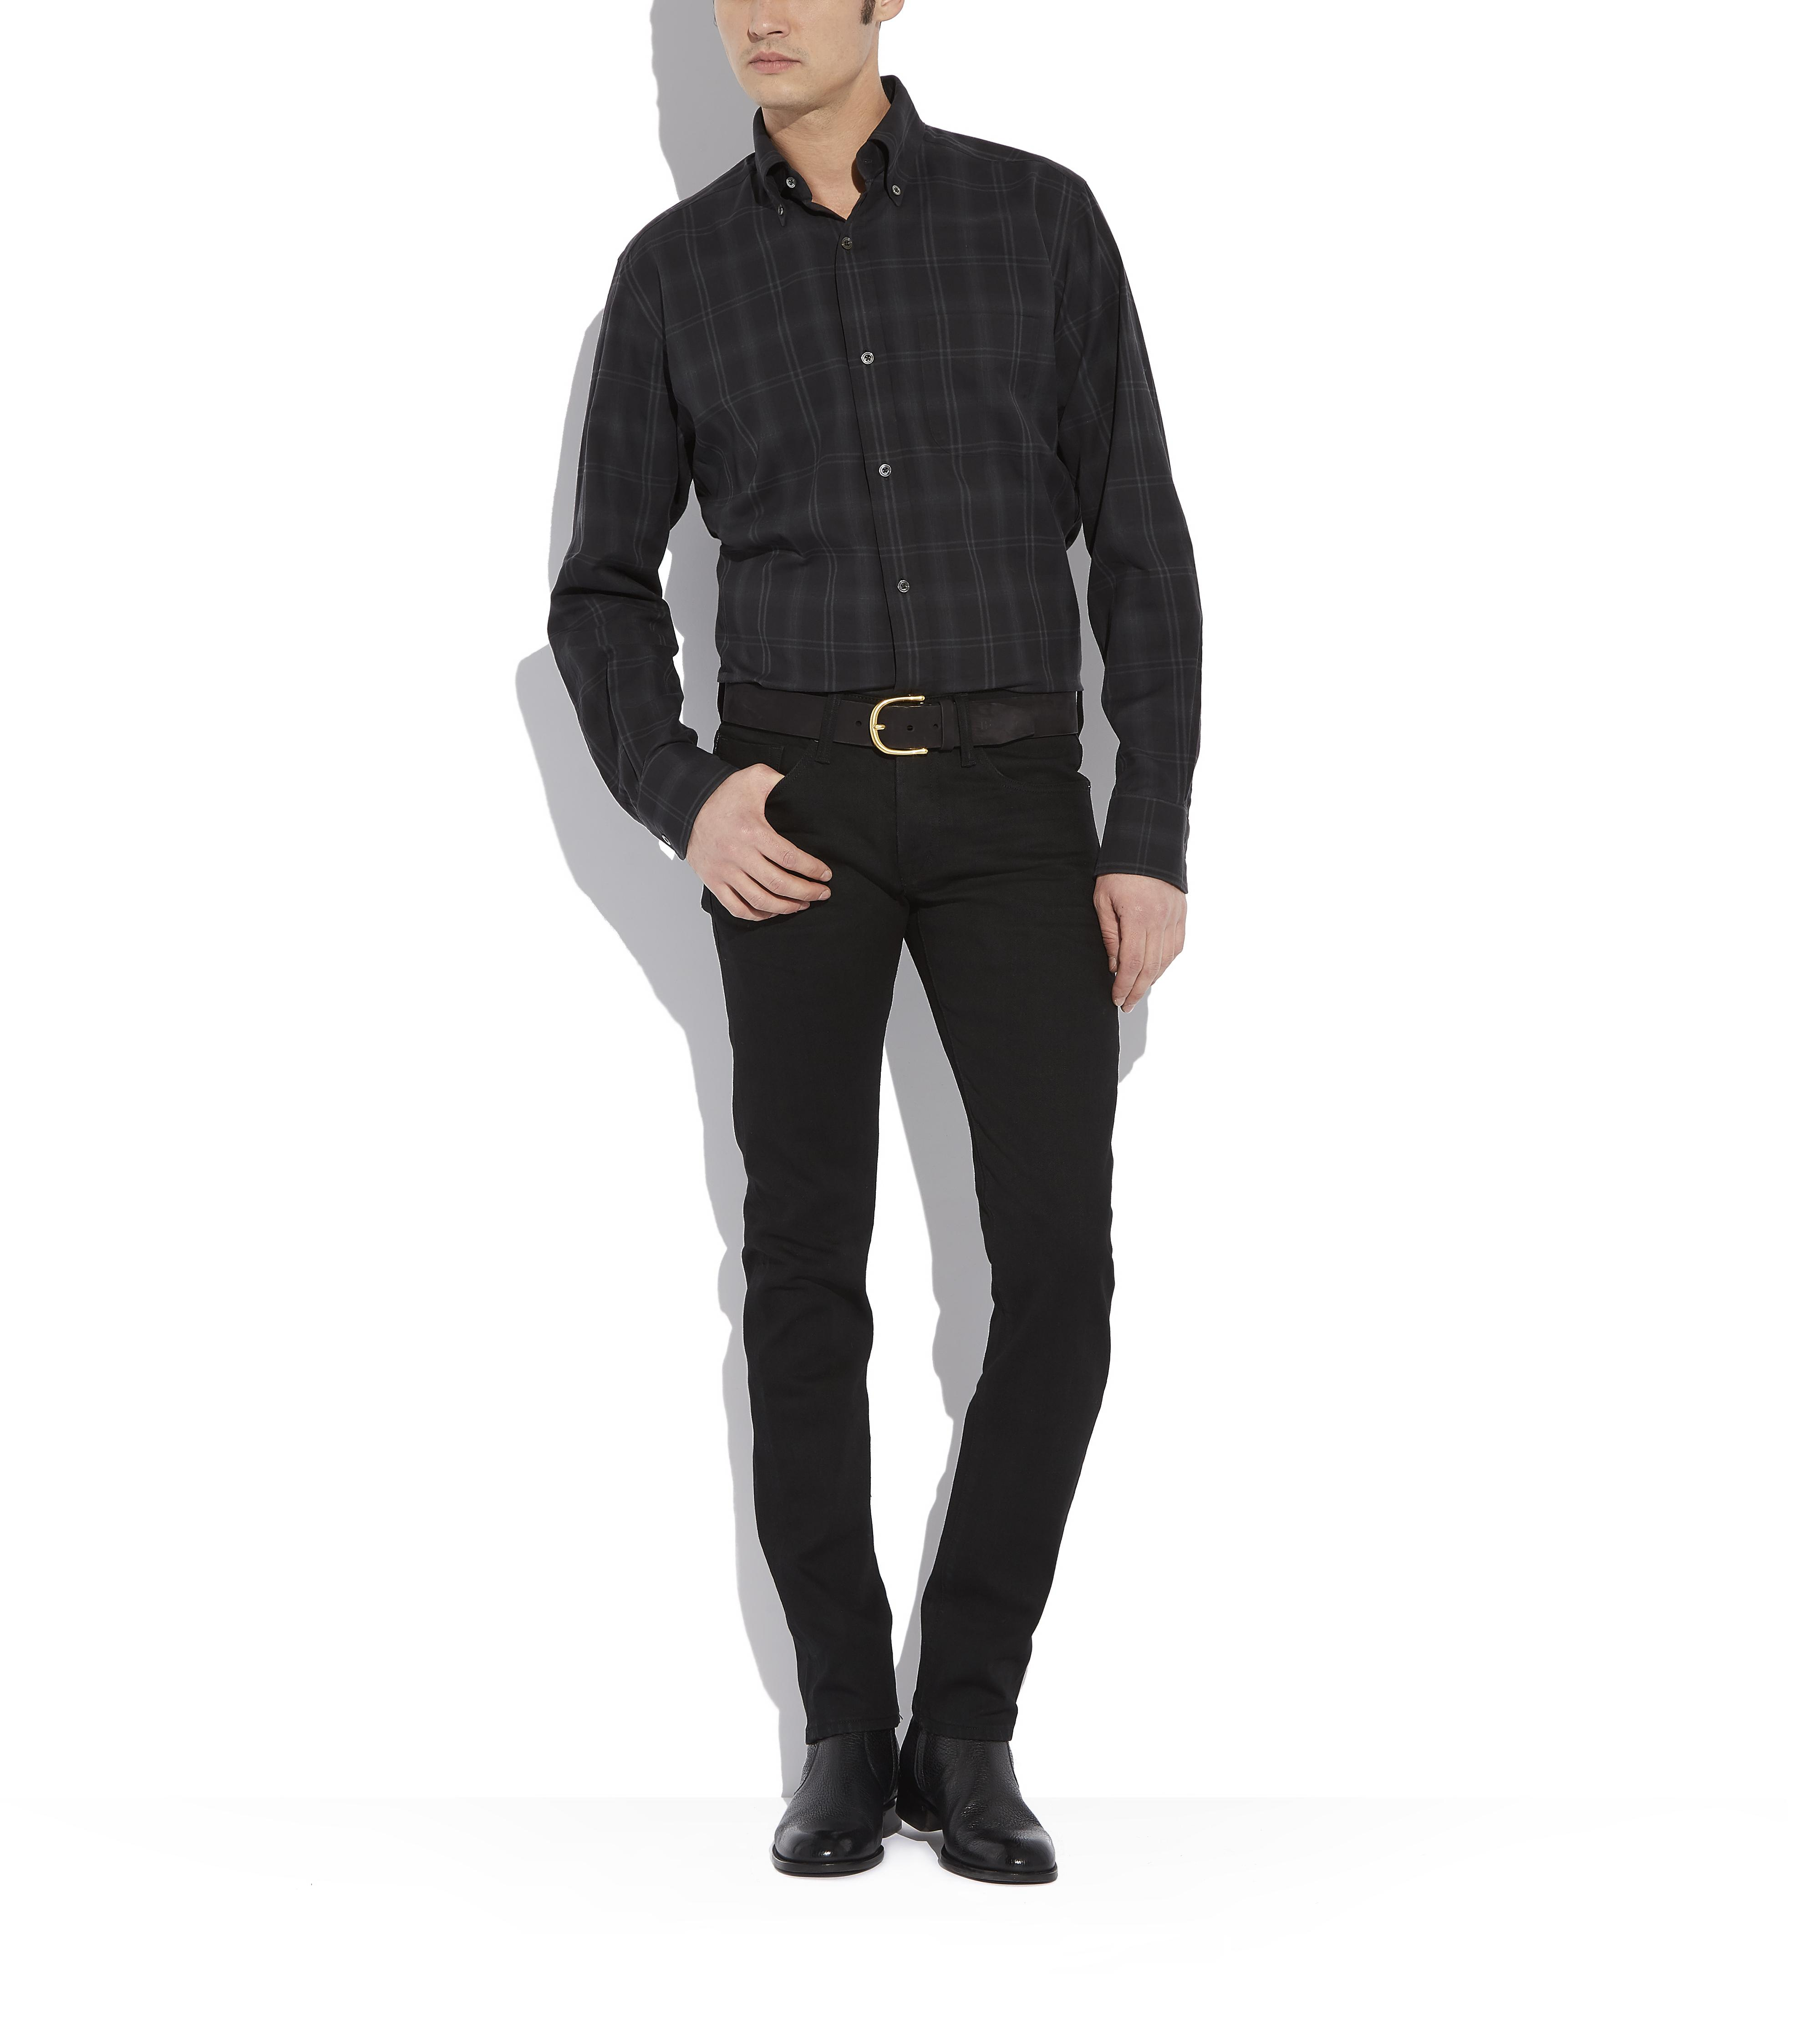 BLACK BRUSHED TONAL CHECK LEISURE SHIRT B thumbnail